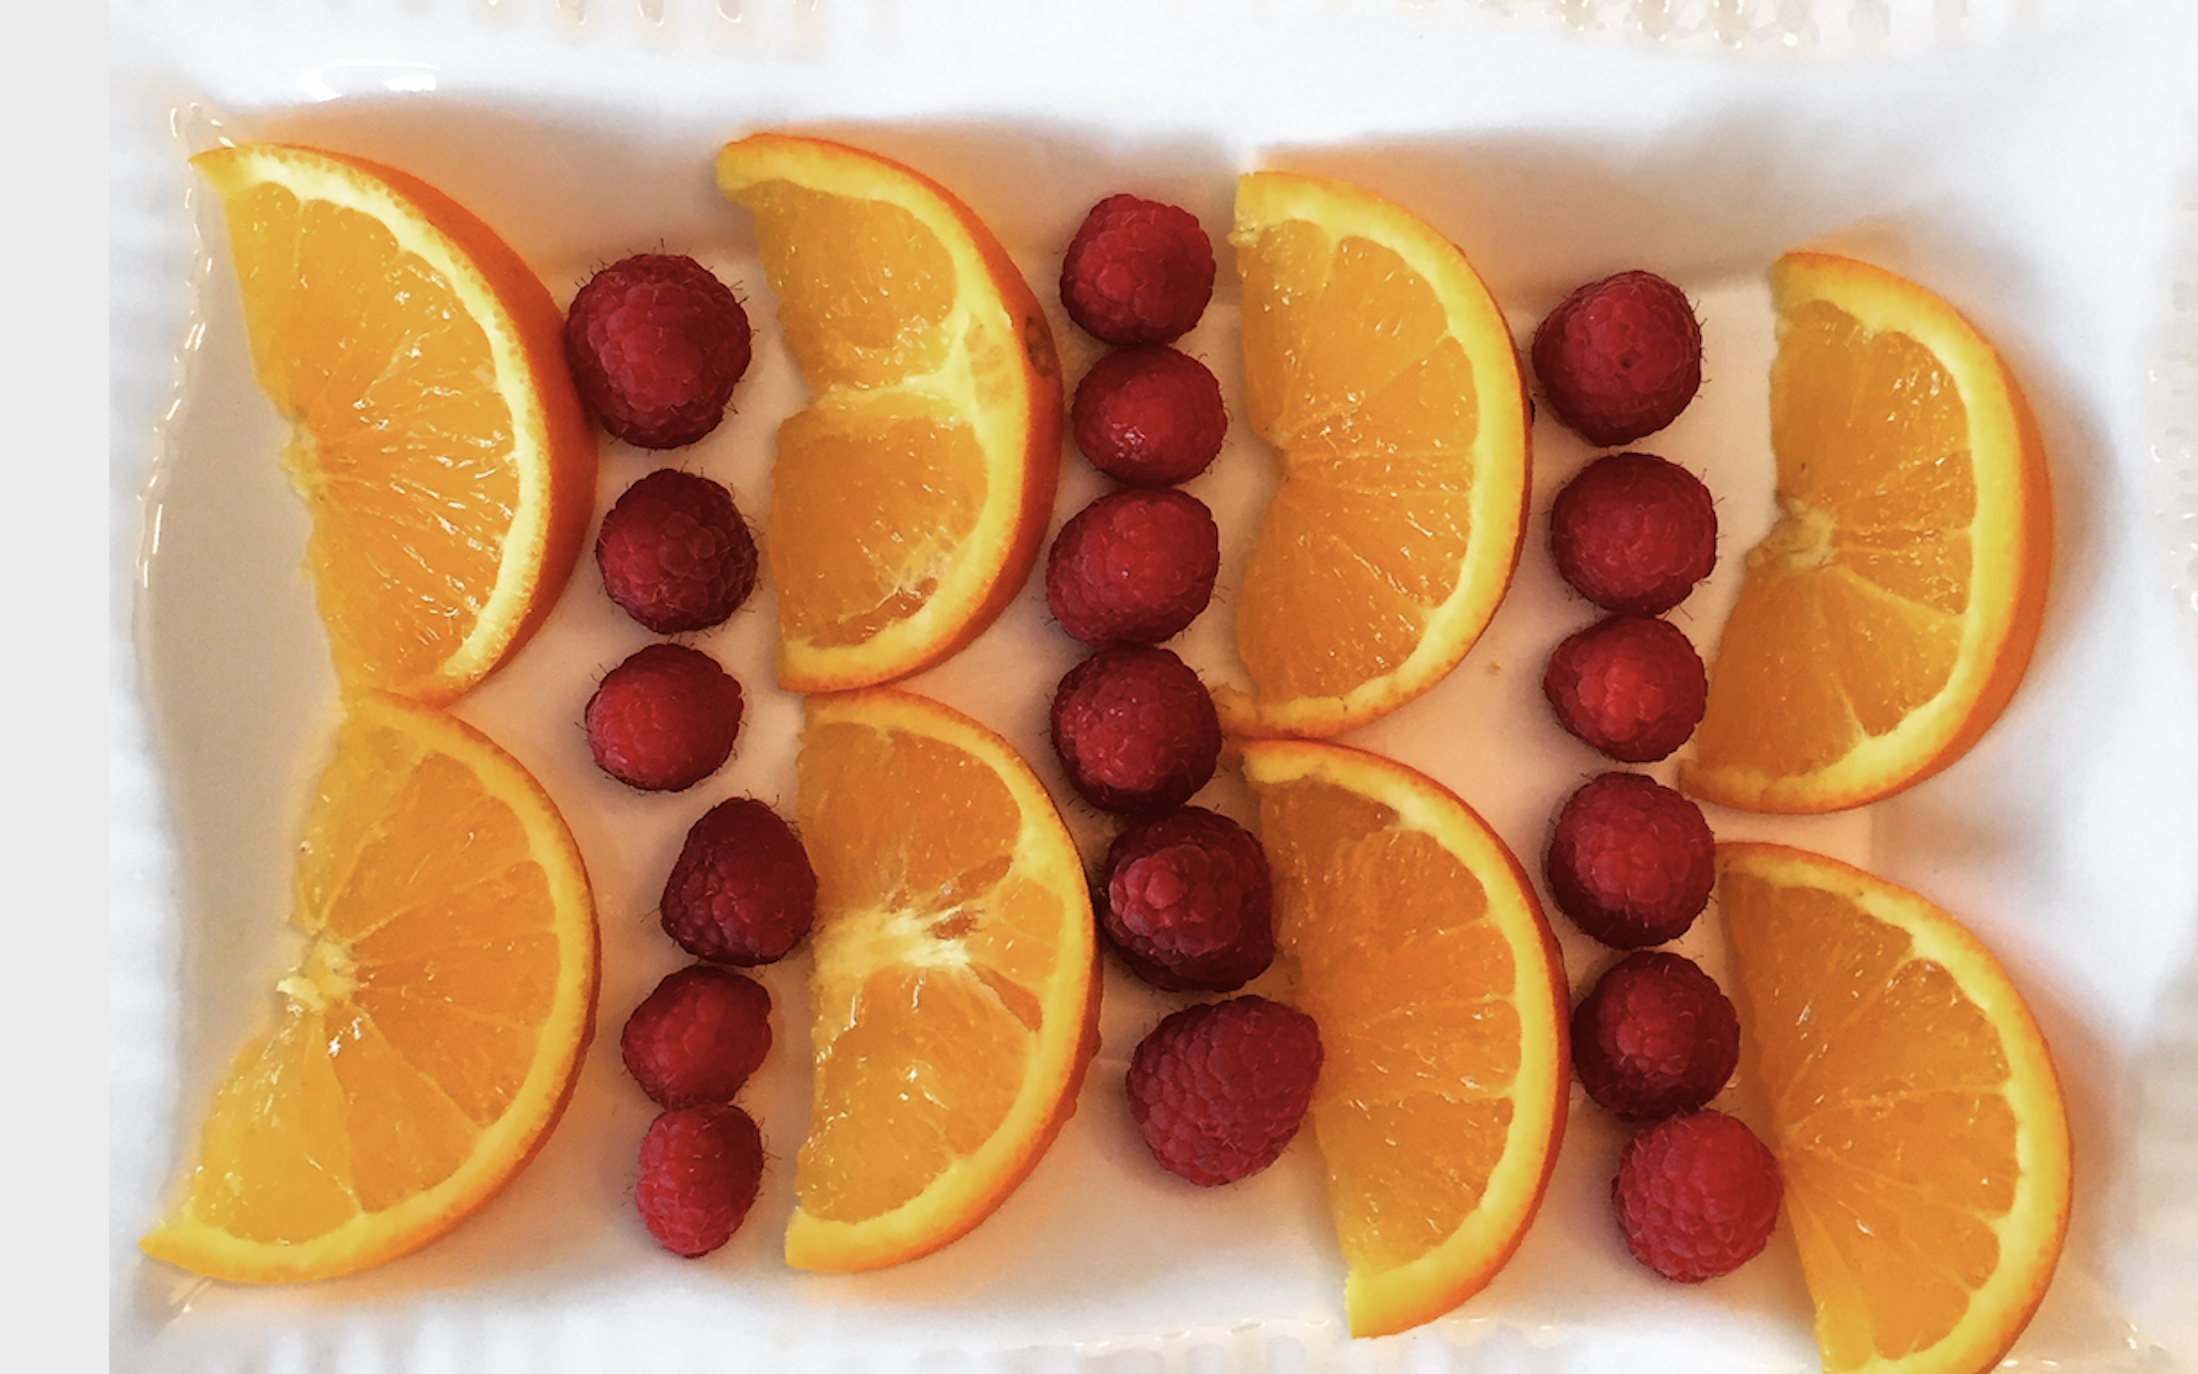 Oranges and Raspberries